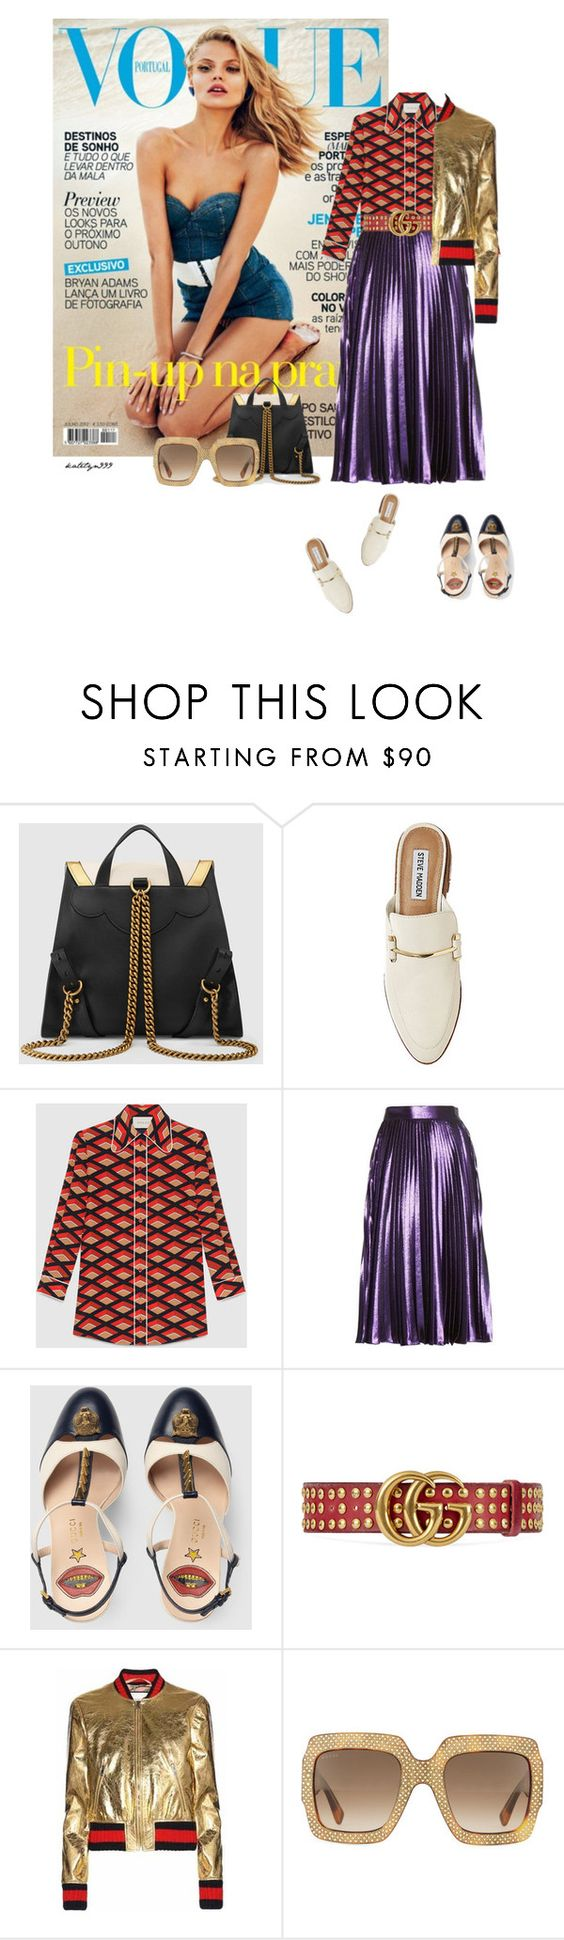 """""""Girl..."""" by katelyn999 ❤ liked on Polyvore featuring Magdalena, Gucci and Steve Madden"""